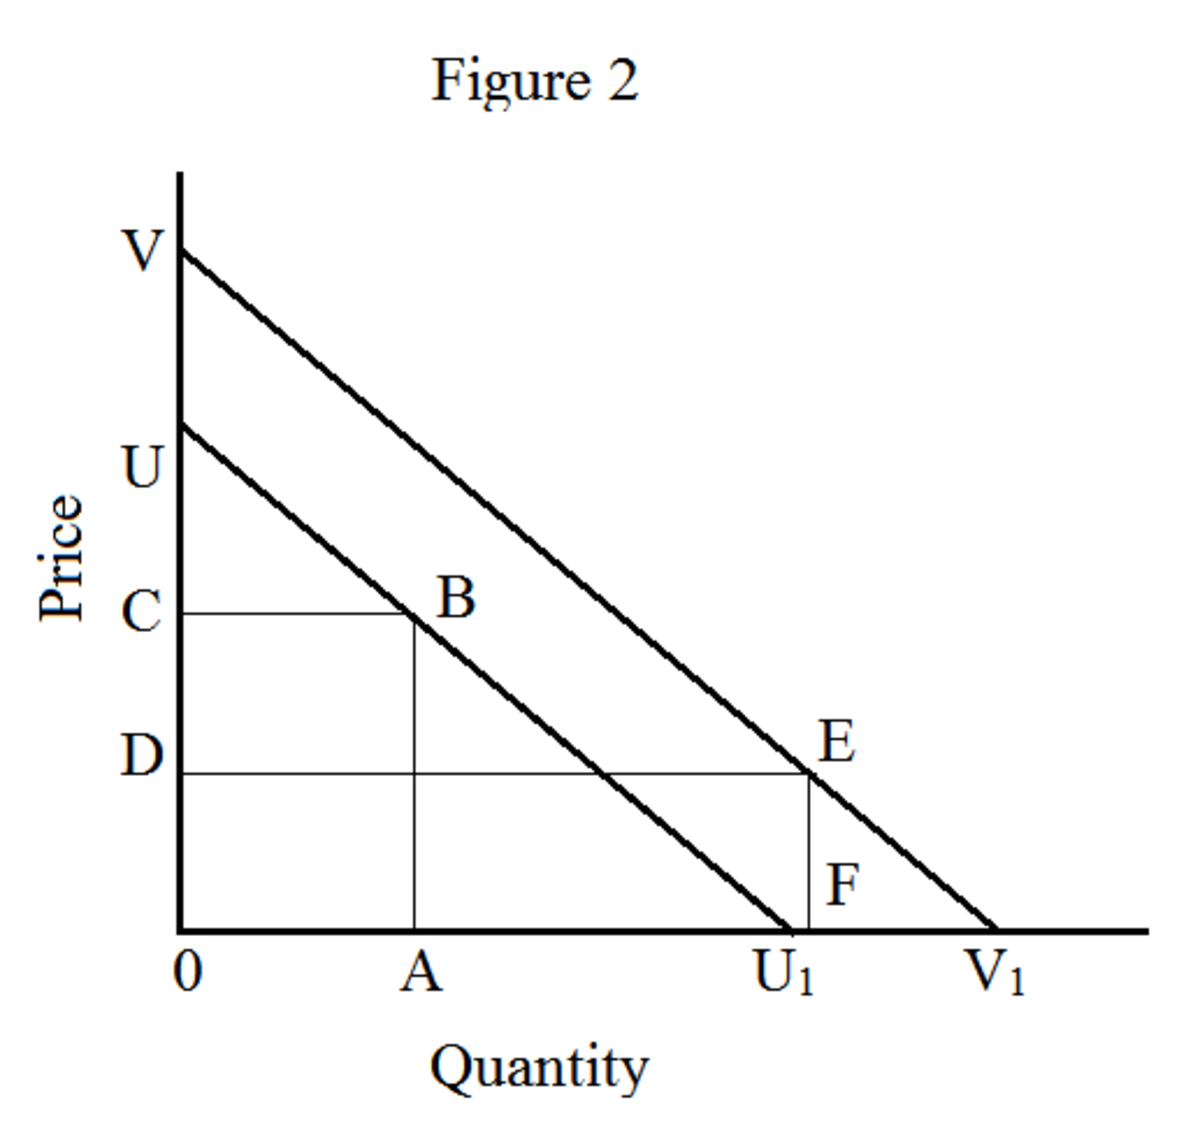 what is the disadvantage of the equimarginal approach